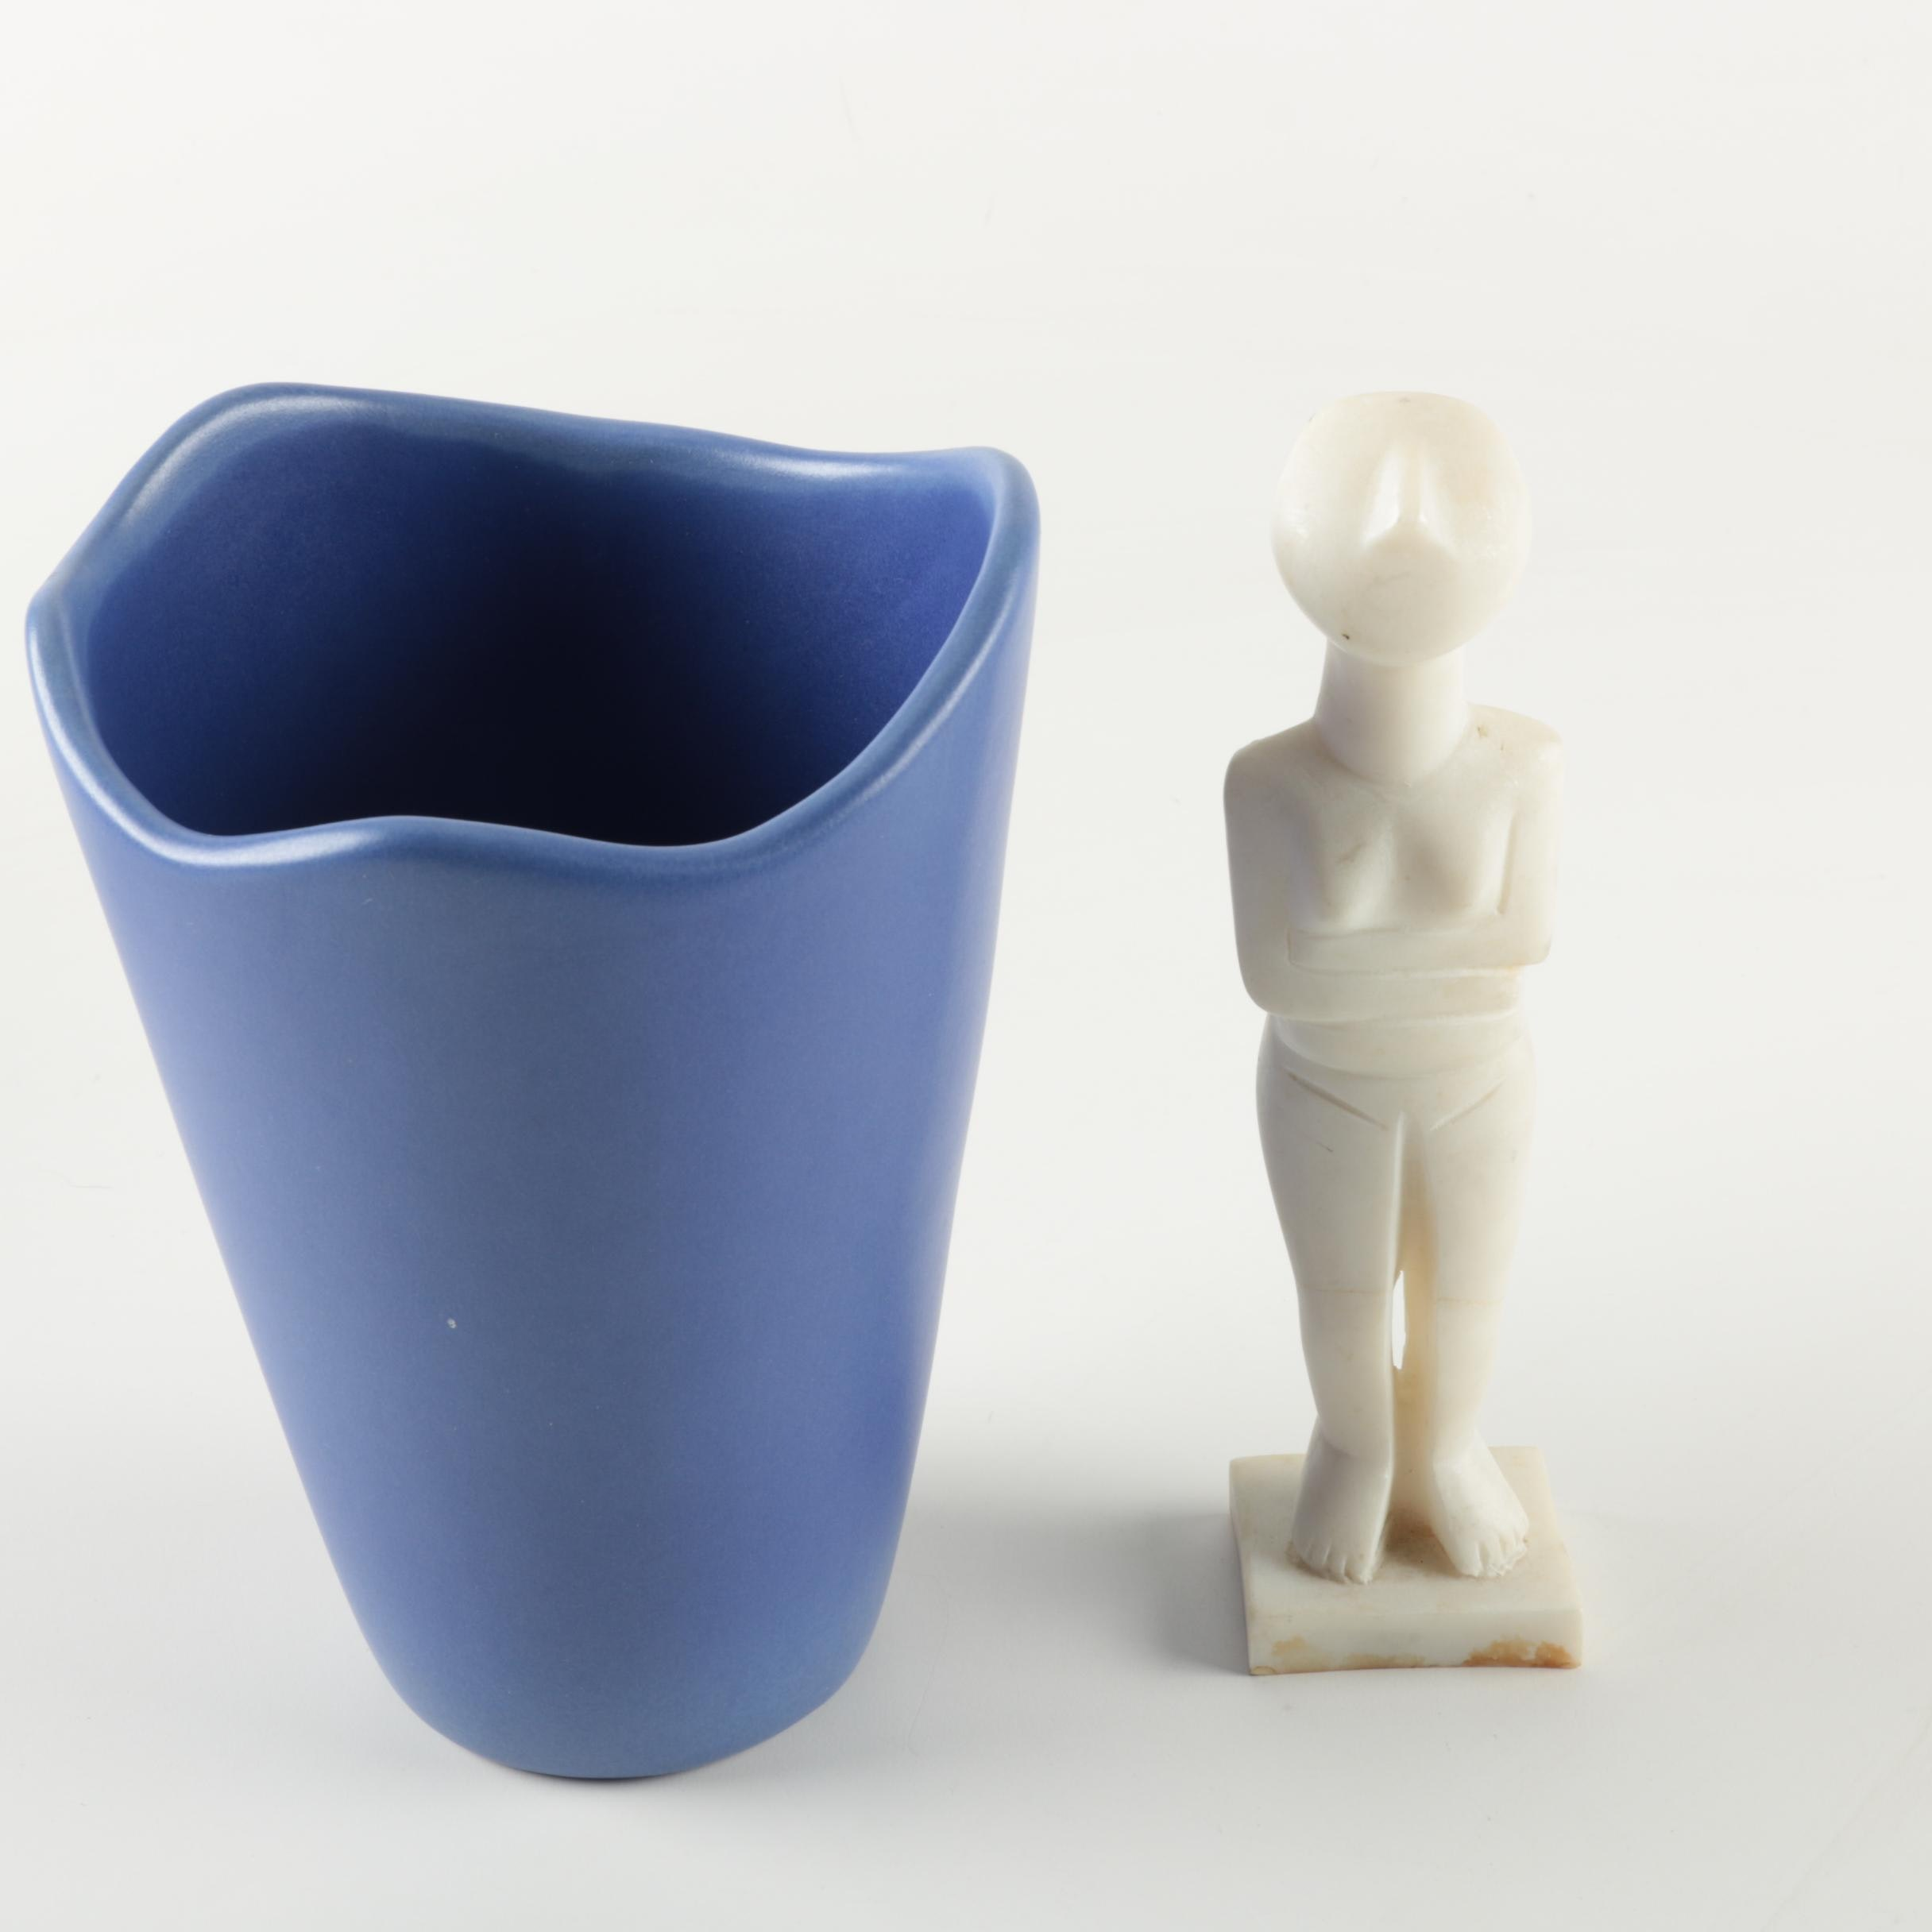 Blue Ceramic Flower Pot and Replica from Antiquity